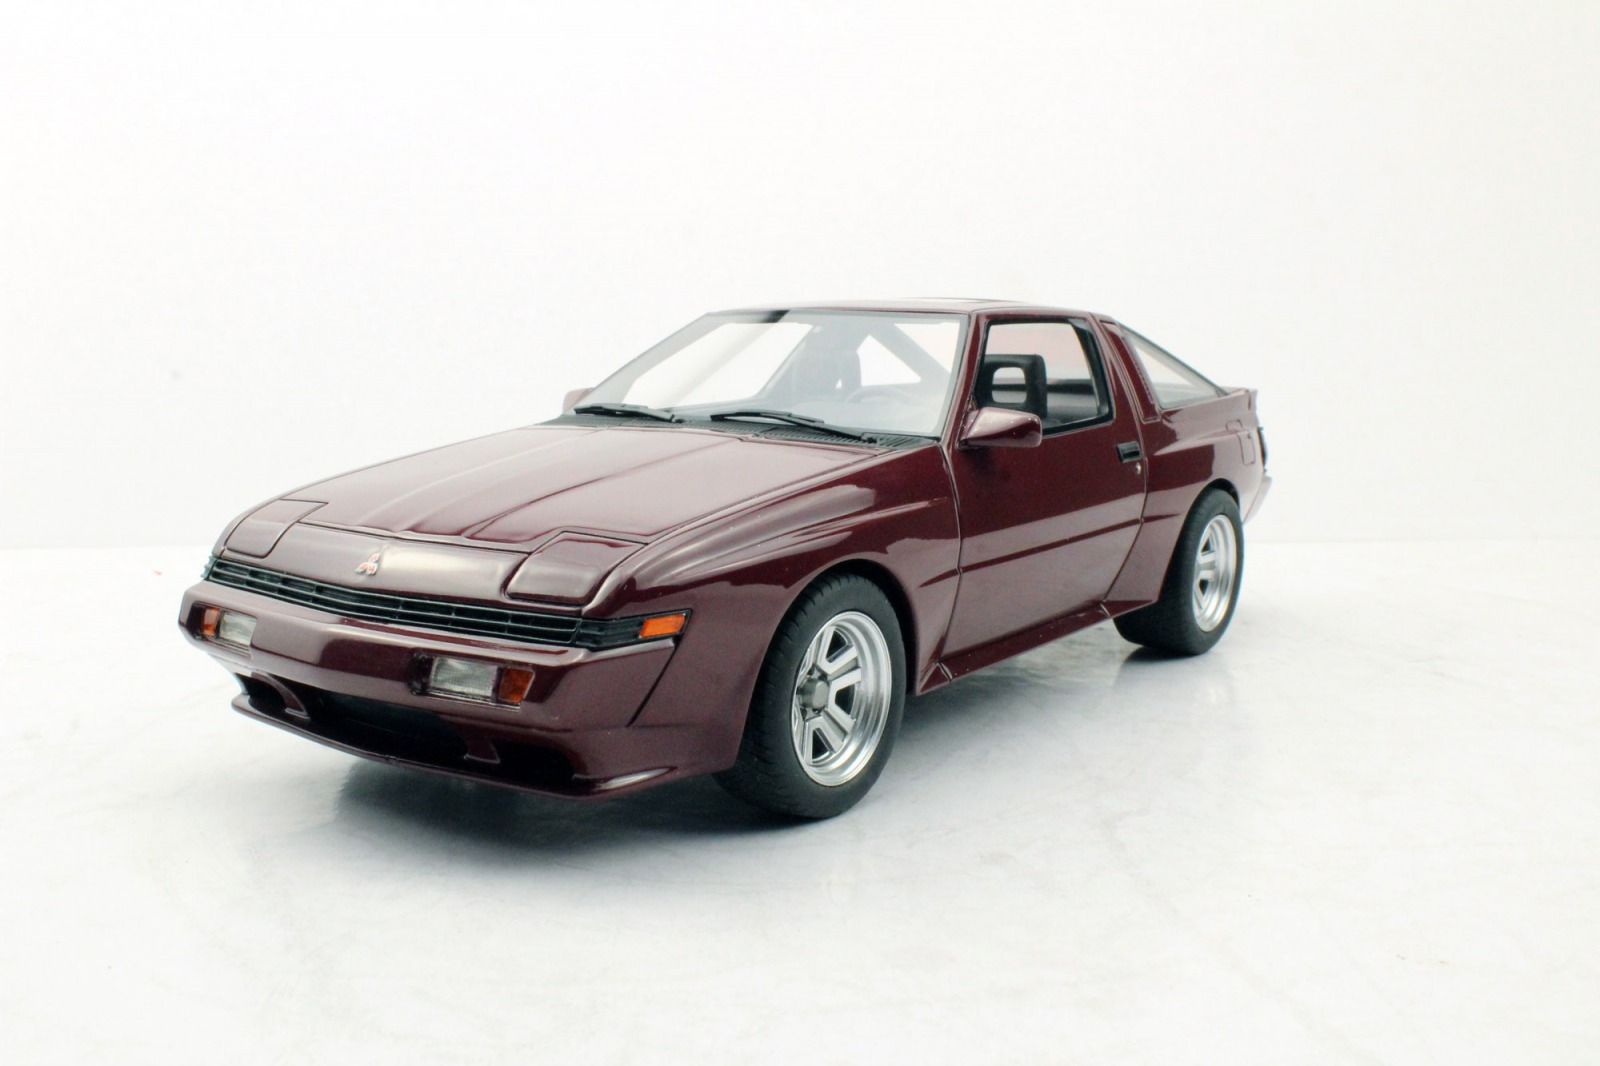 LS Collectibles 1:18 1988年モデル 三菱 スタリオン 2.0 Turbo EXMITSUBISHI - STARION 2.0 TURBO EX 1988 1/18 by LS Collectibles